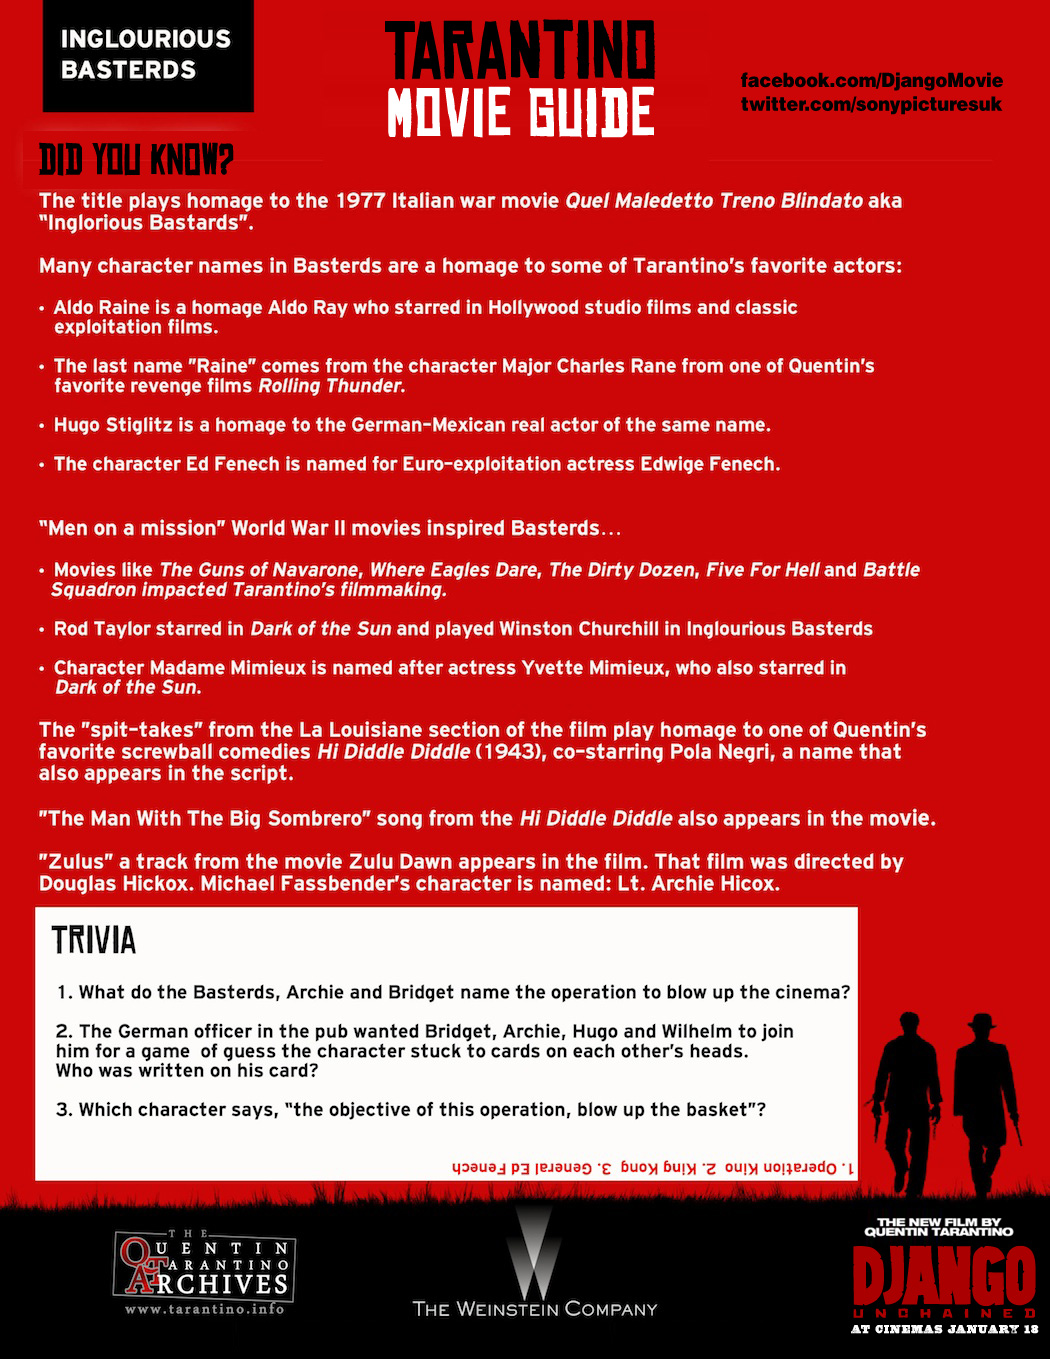 Tarantino Movie Guide - Inglourious Basterds